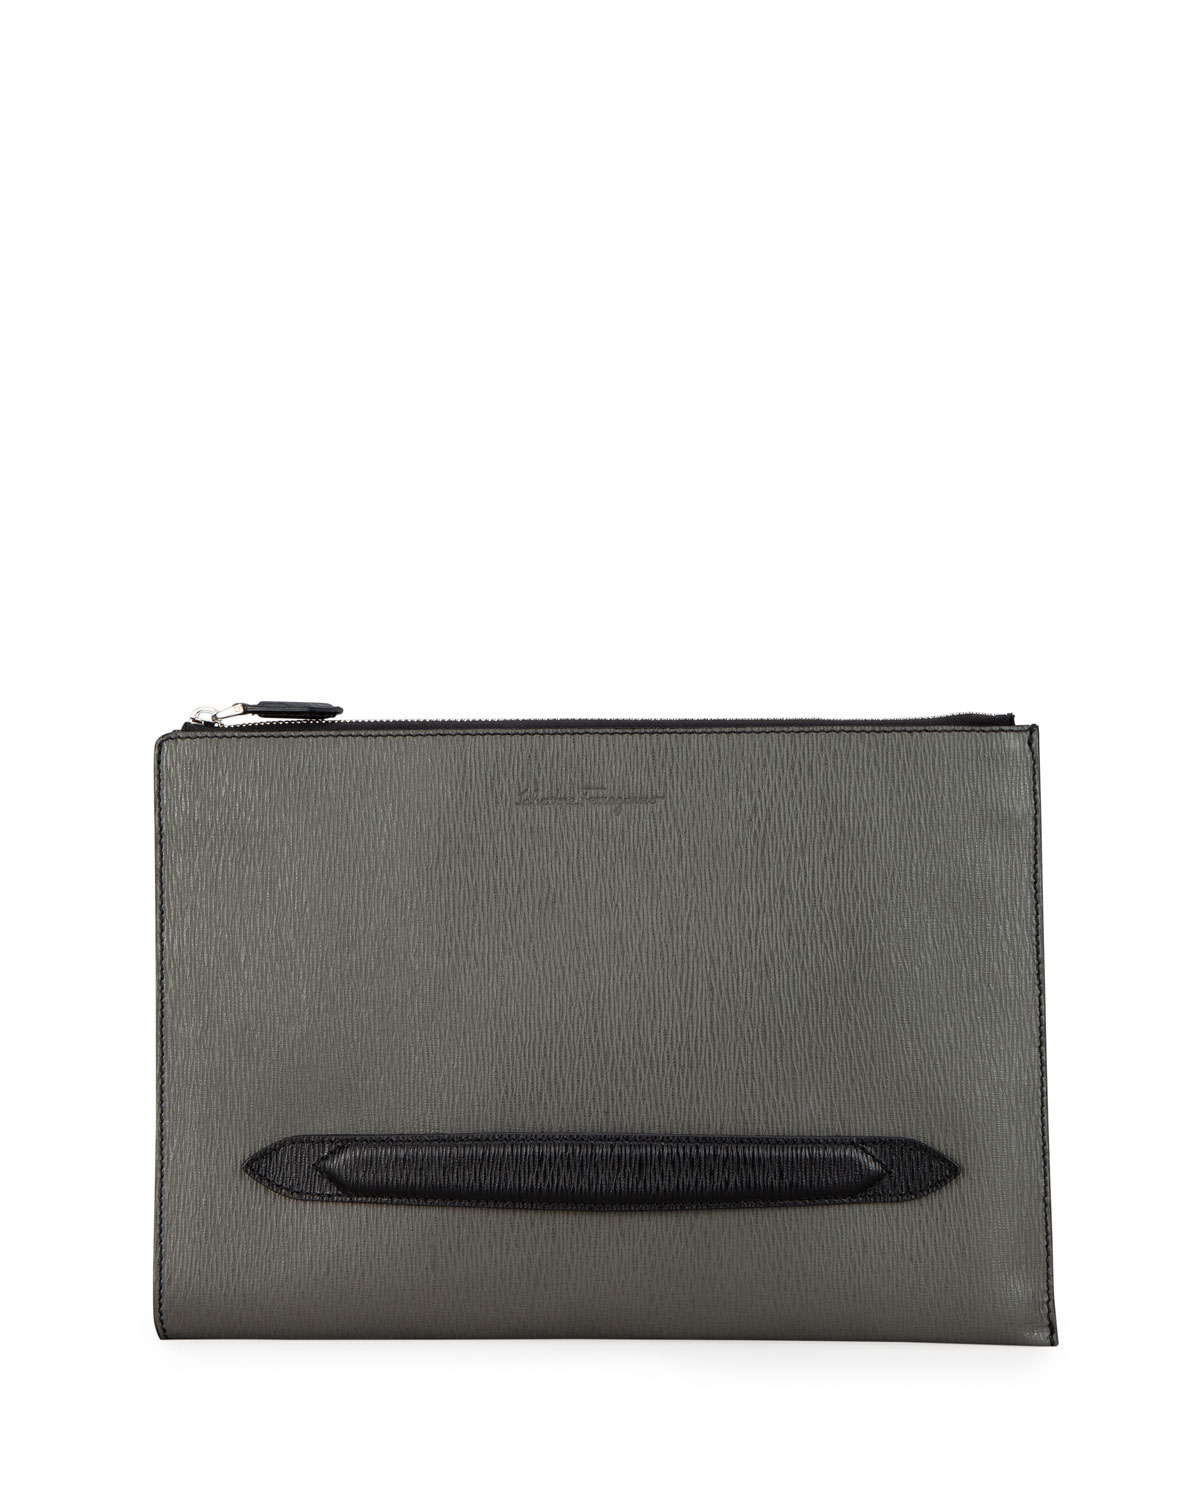 Salvatore Ferragamo Men's Revival Textured Leather Portfolio Case